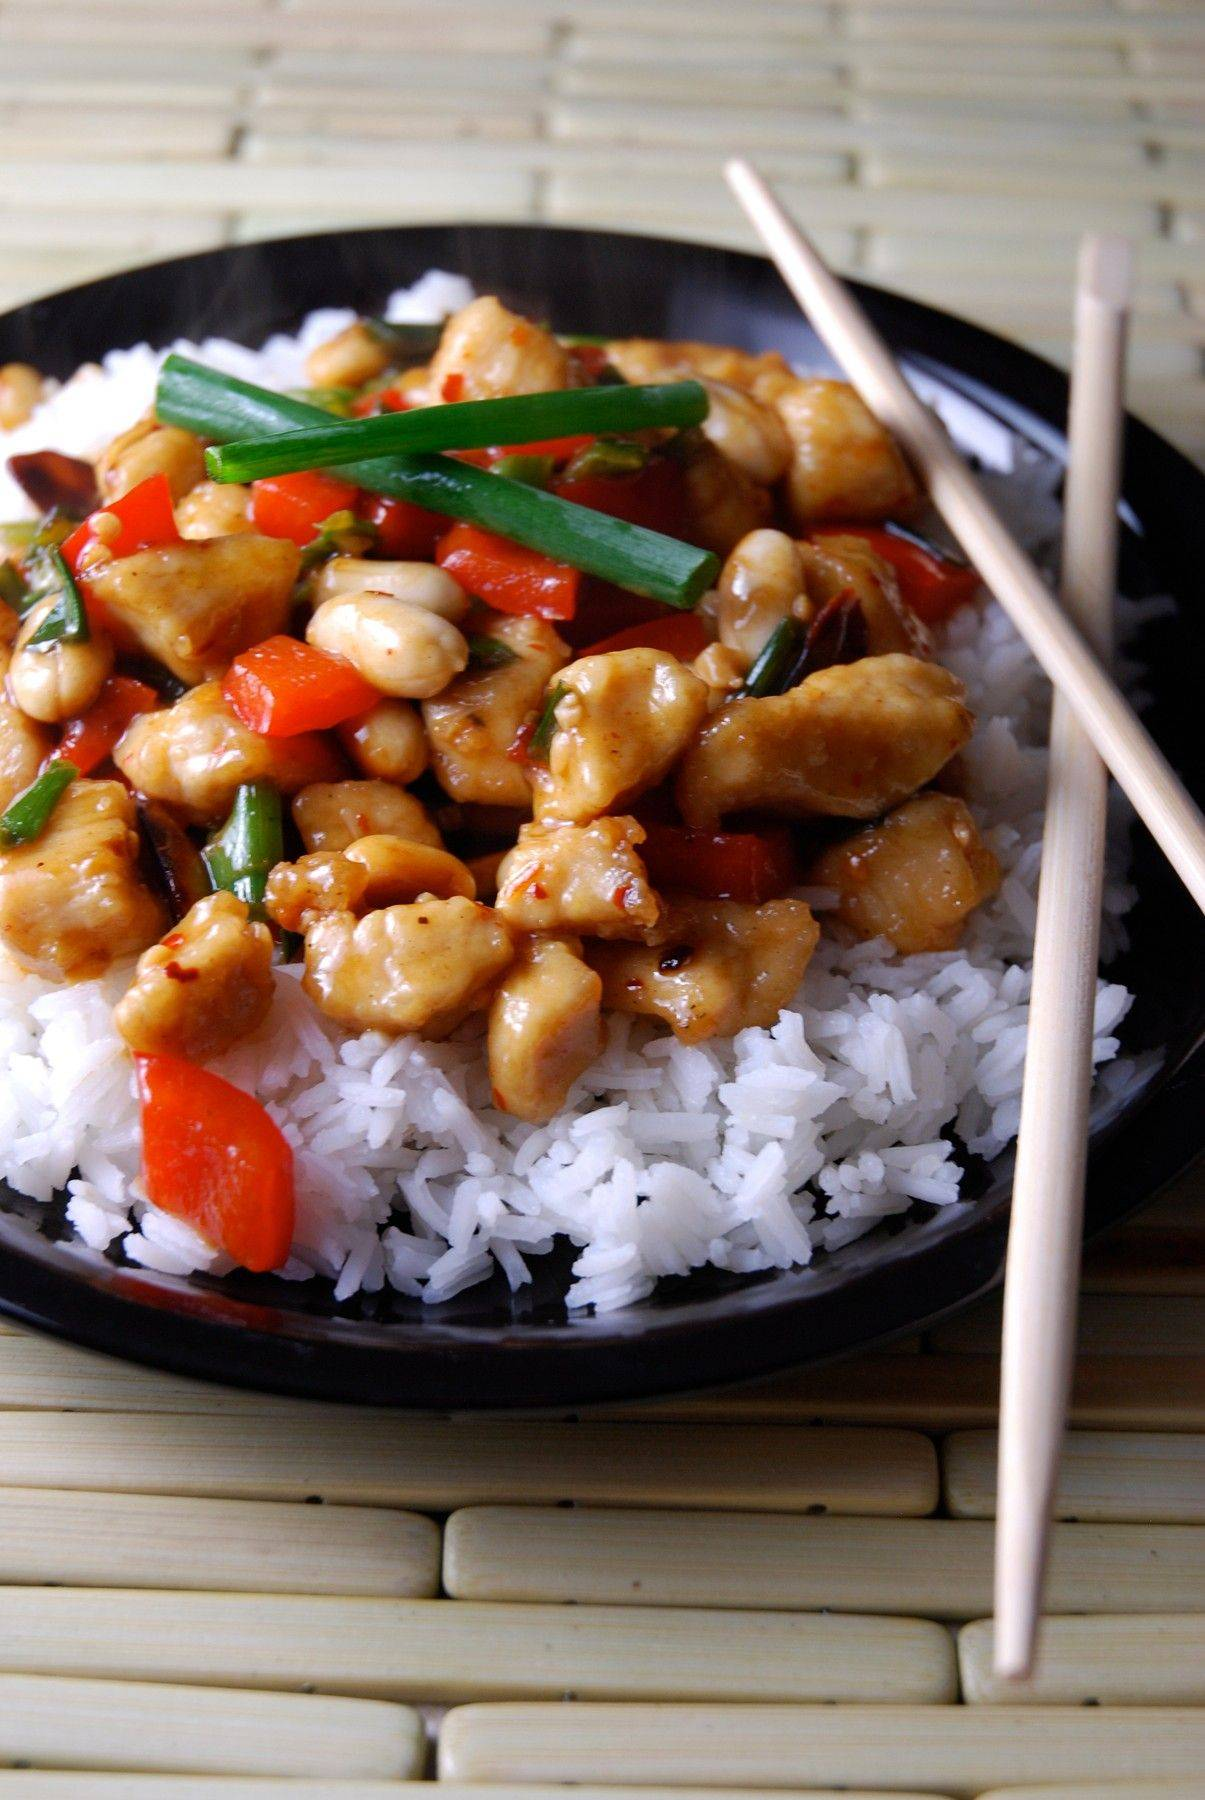 When it's just the two of you, this Kung Pao Chicken satifies the takeout urge.